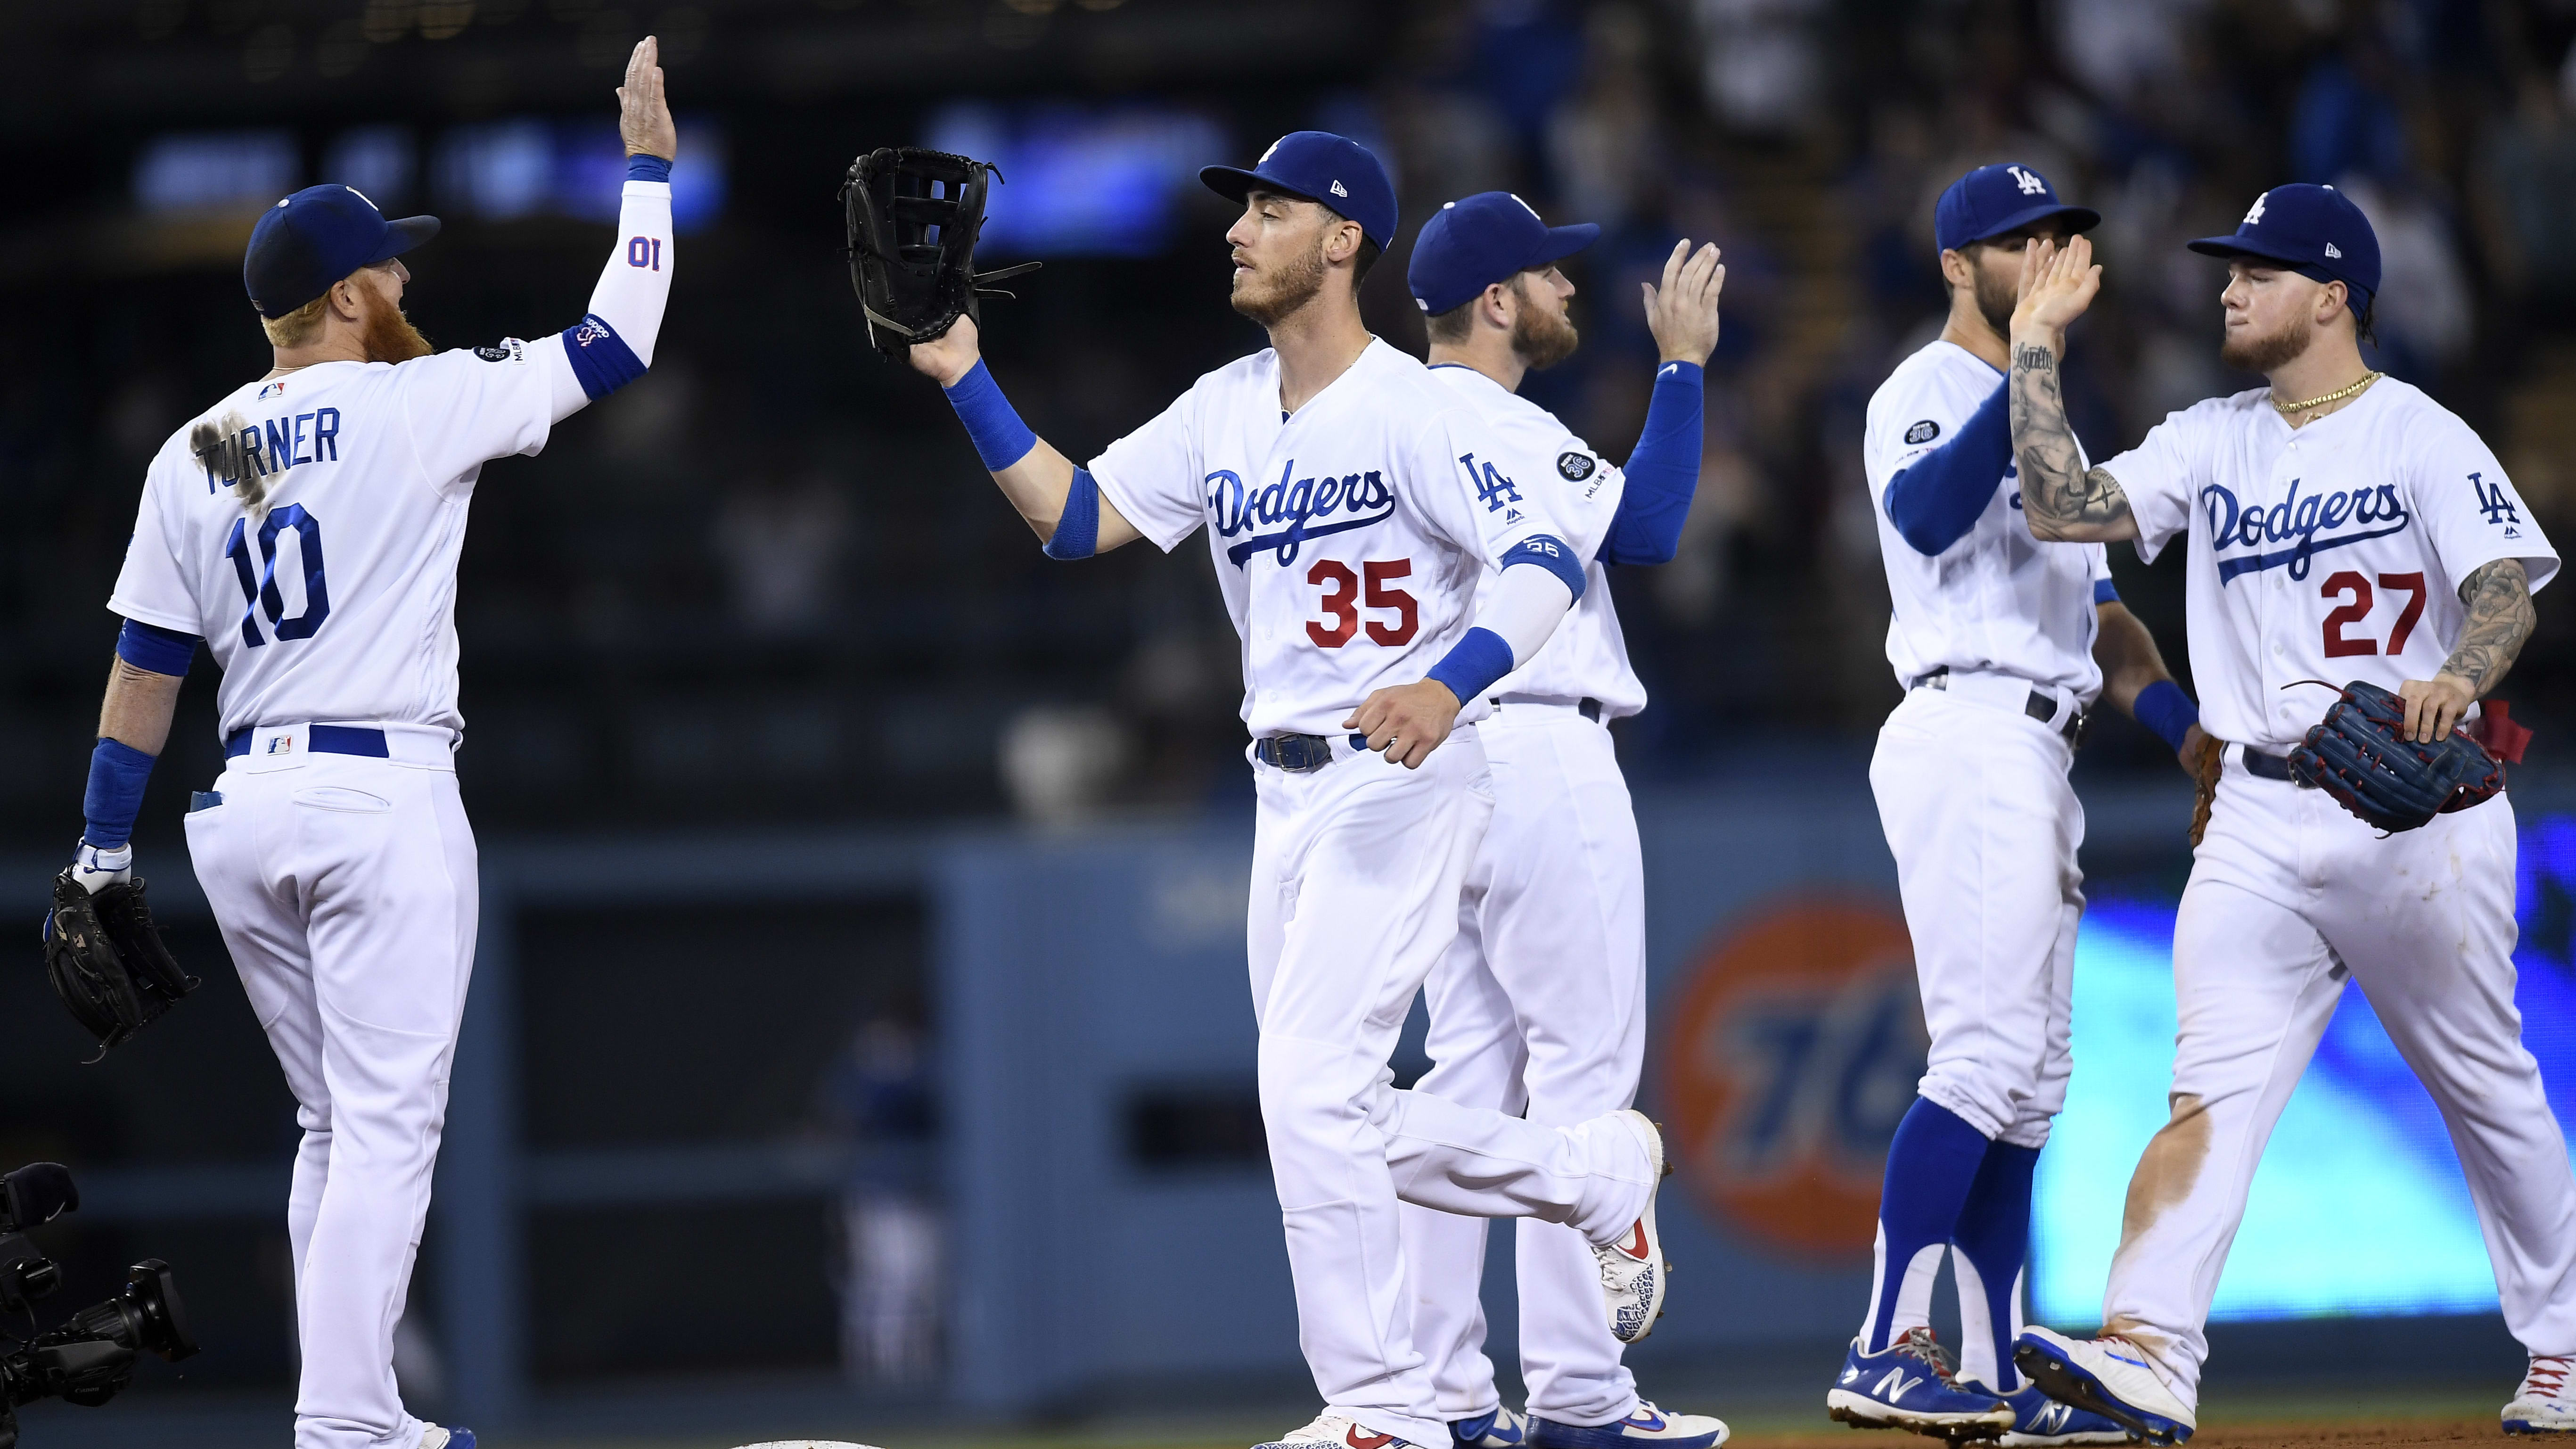 LOS ANGELES, CA - JUNE 13: Cody Bellinger #35 of the Los Angeles Dodgers celebrates with teammates after defeating Chicago Cubs, 7-3, at Dodger Stadium on June 13, 2019 in Los Angeles, California. (Photo by Kevork Djansezian/Getty Images)